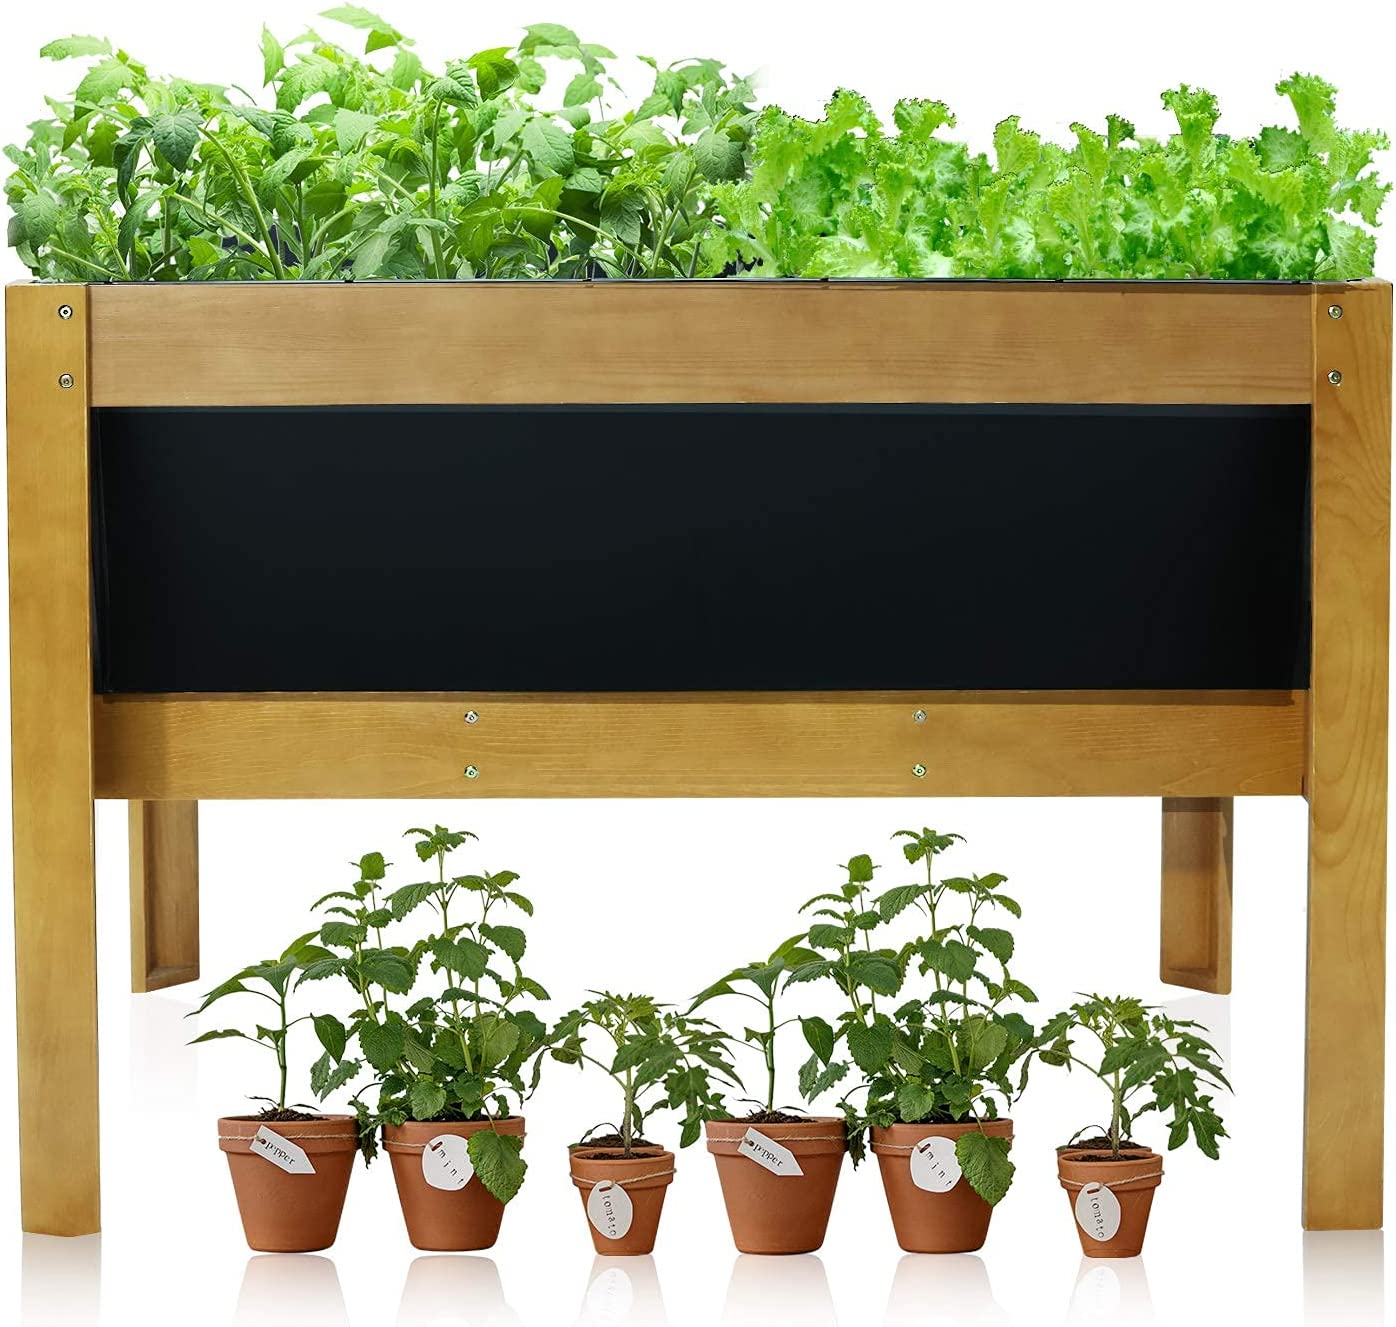 AOODOR Wooden Raised Garden Bed Kit Solid Wood and Metal Galvanized Elevated Planter Box for Vegetables, Flower, and Herbs Outdoor - 48